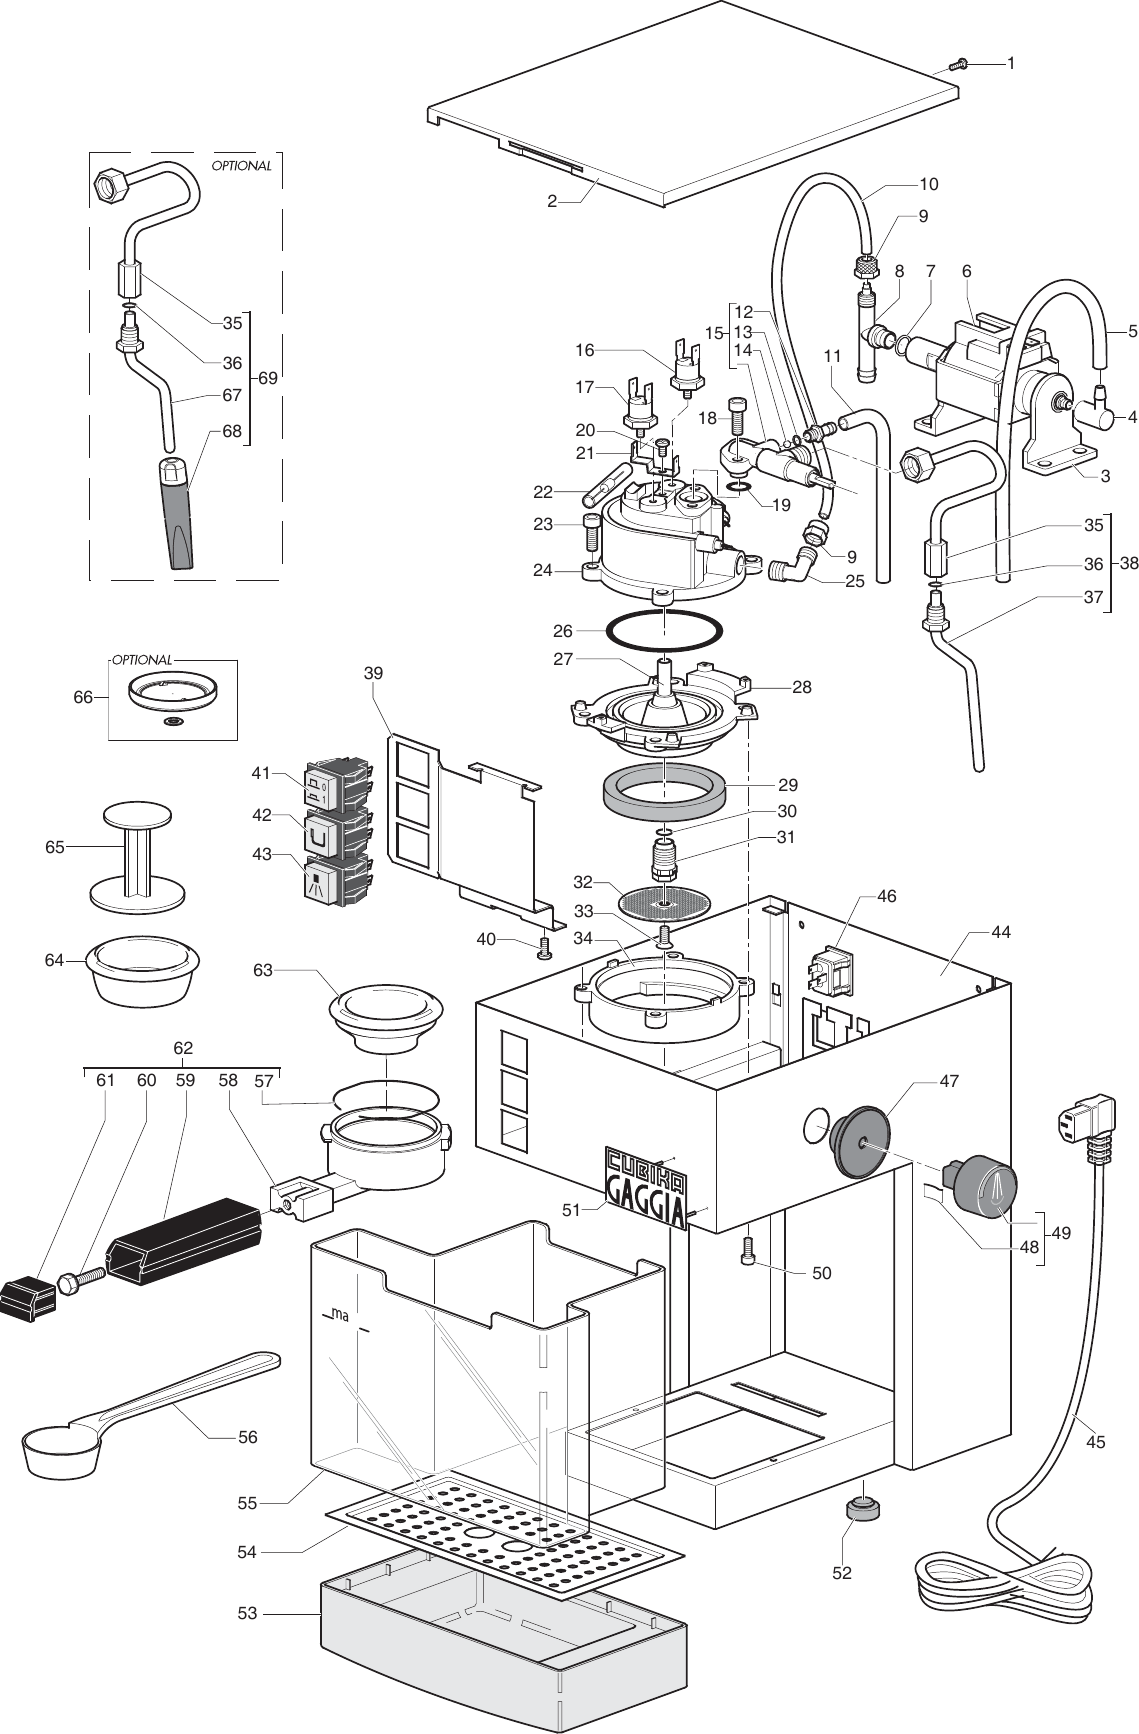 Gaggia Cubika Parts Diagram Sin015xn Er 01 Rev02 User